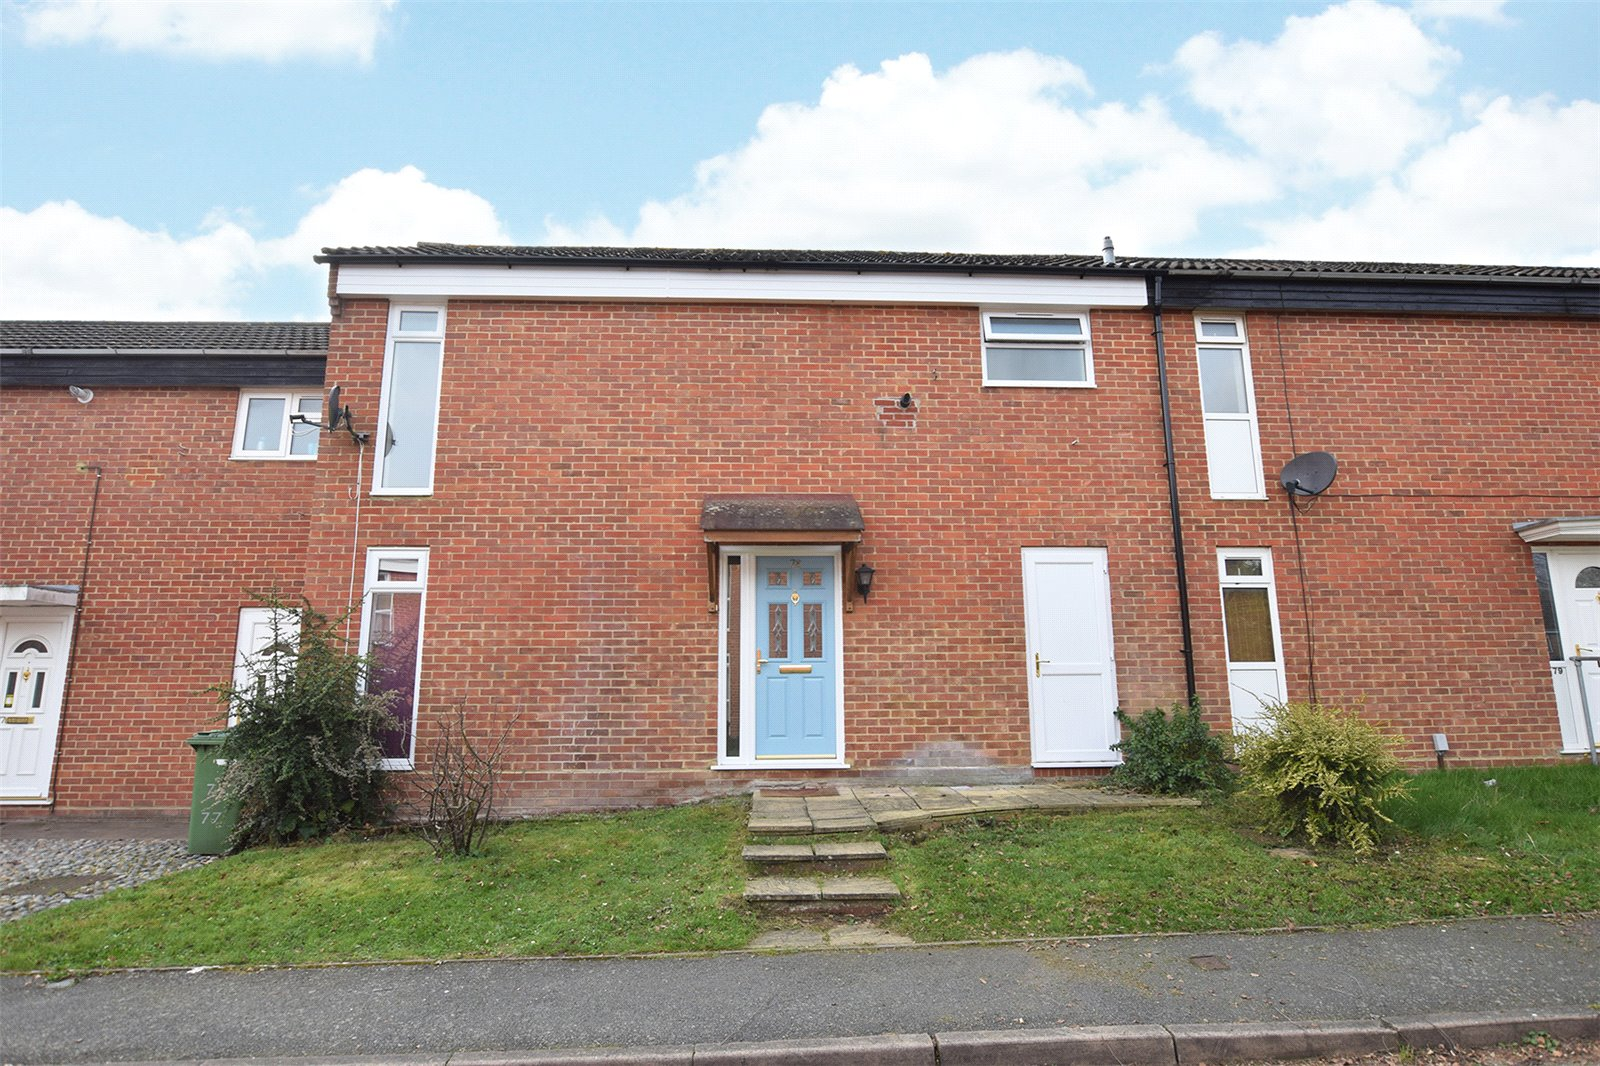 3 Bedrooms Terraced House for sale in Oldstead, Bracknell, Berkshire, RG12